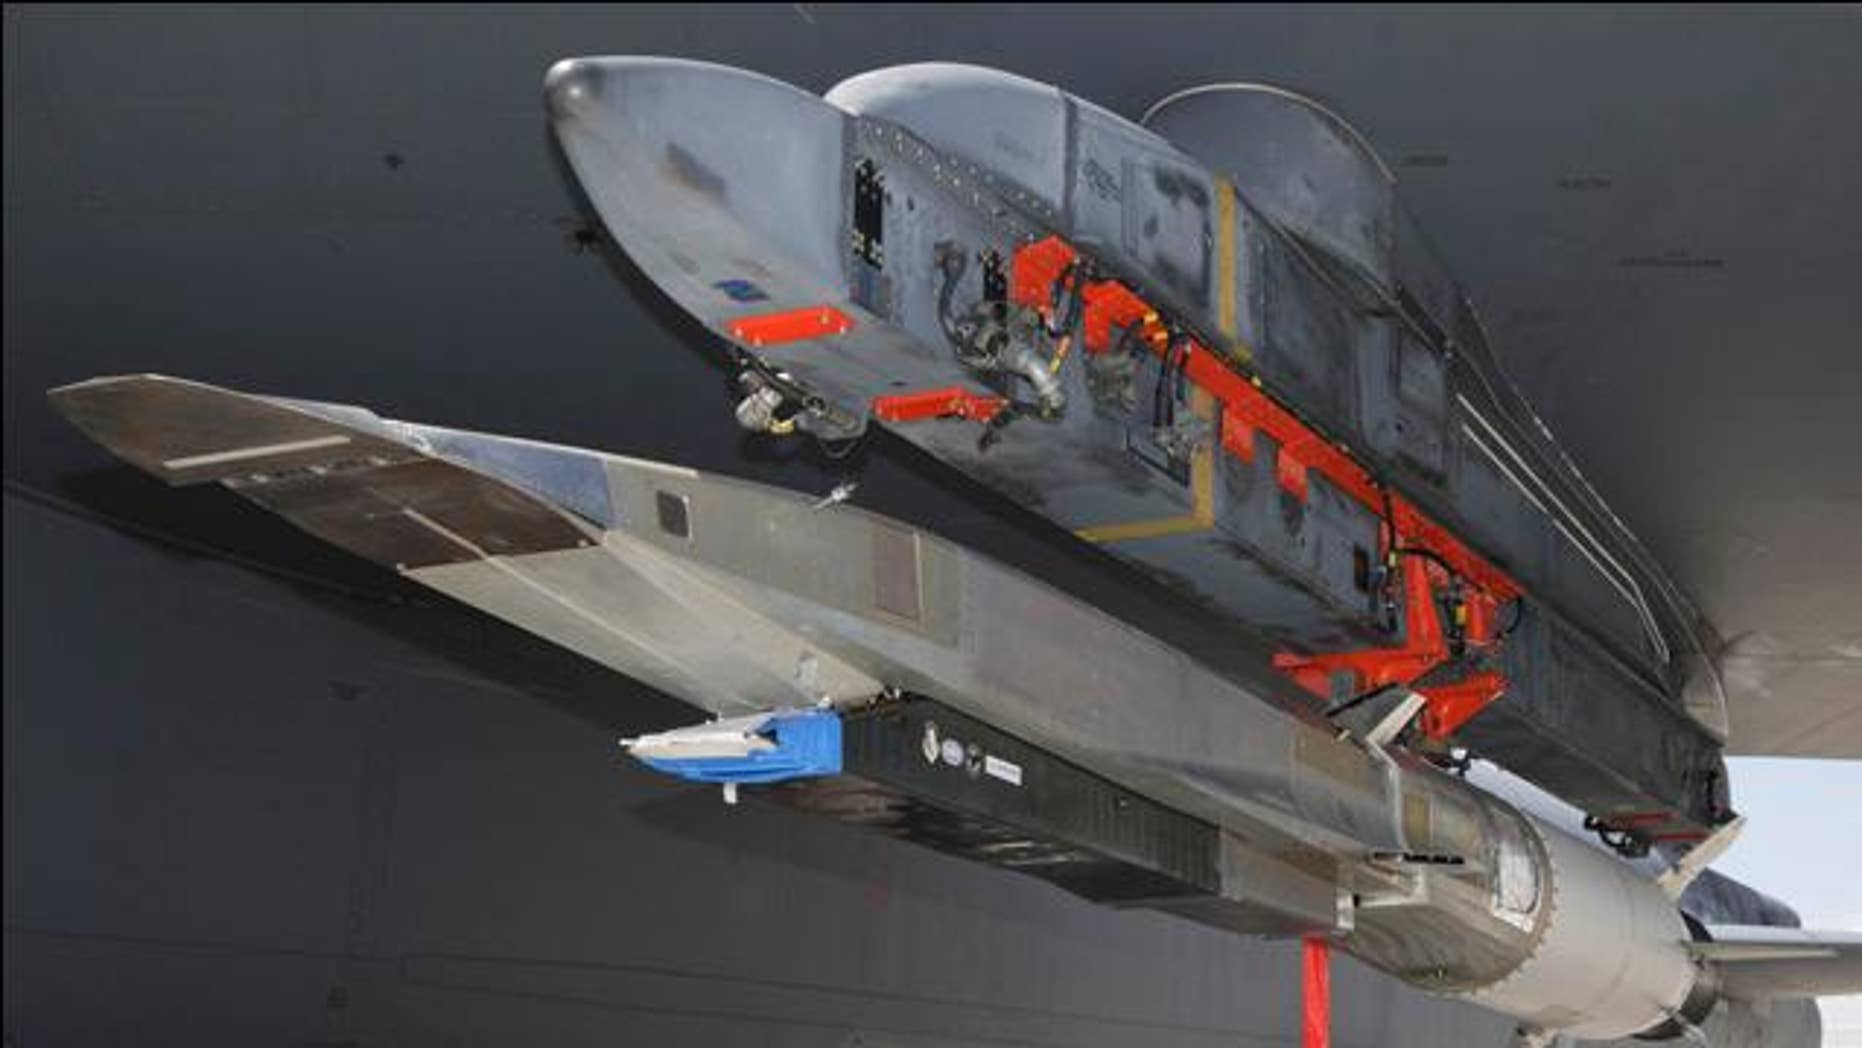 The X-51A WaveRider hypersonic test vehicle was uploaded to a B-52 Stratofortress at Edwards Air Force Base, Calif., July 17 for fit testing.